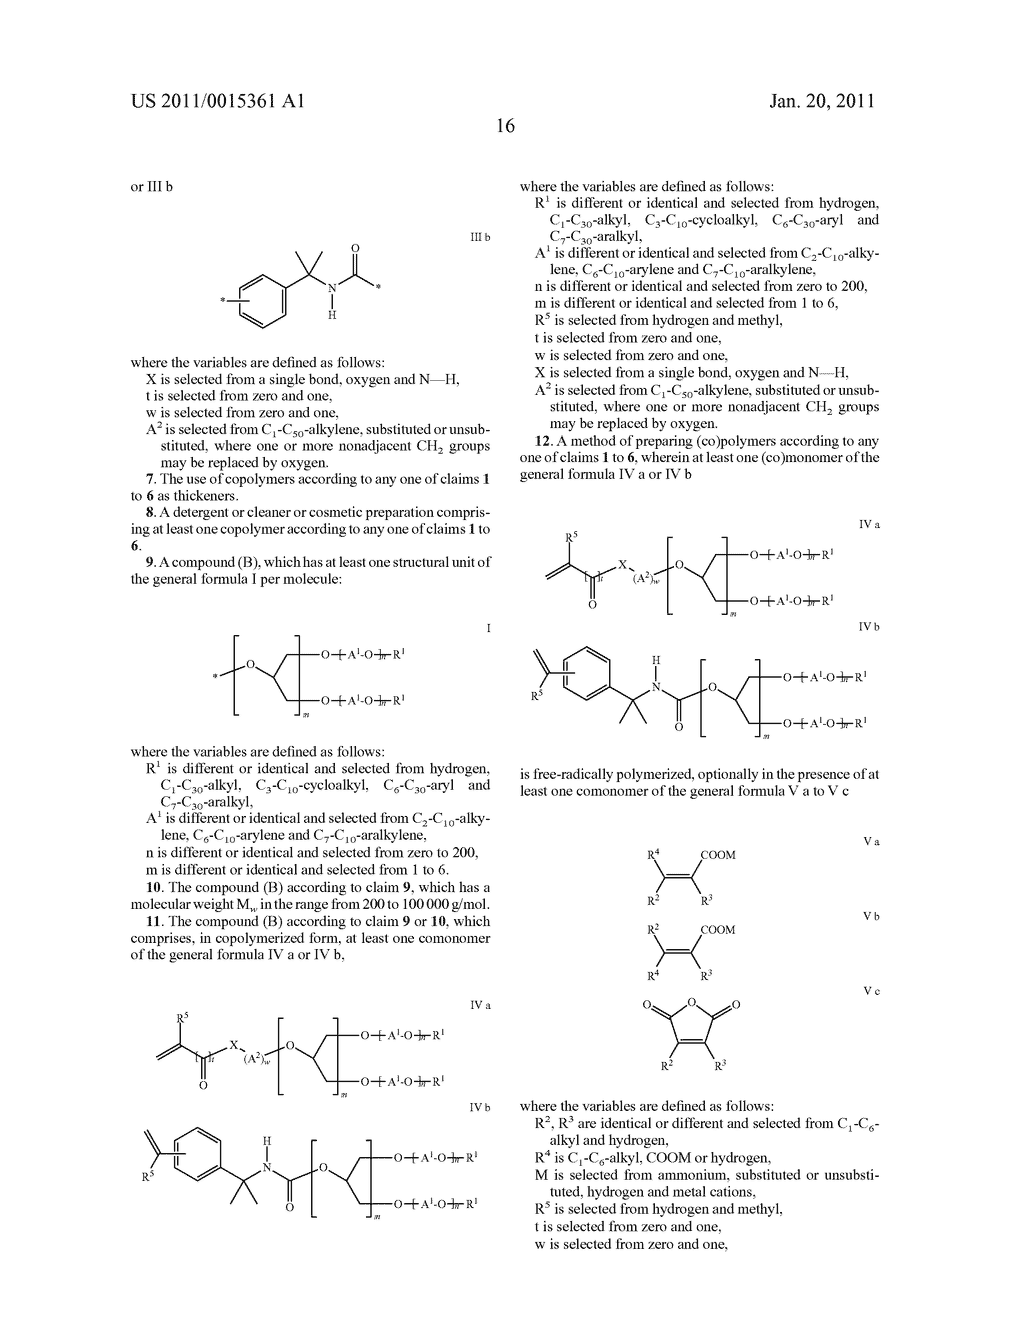 COPOLYMERS, THEIR USE AS THICKENERS, AND METHODS FOR THEIR PREPARATION - diagram, schematic, and image 17